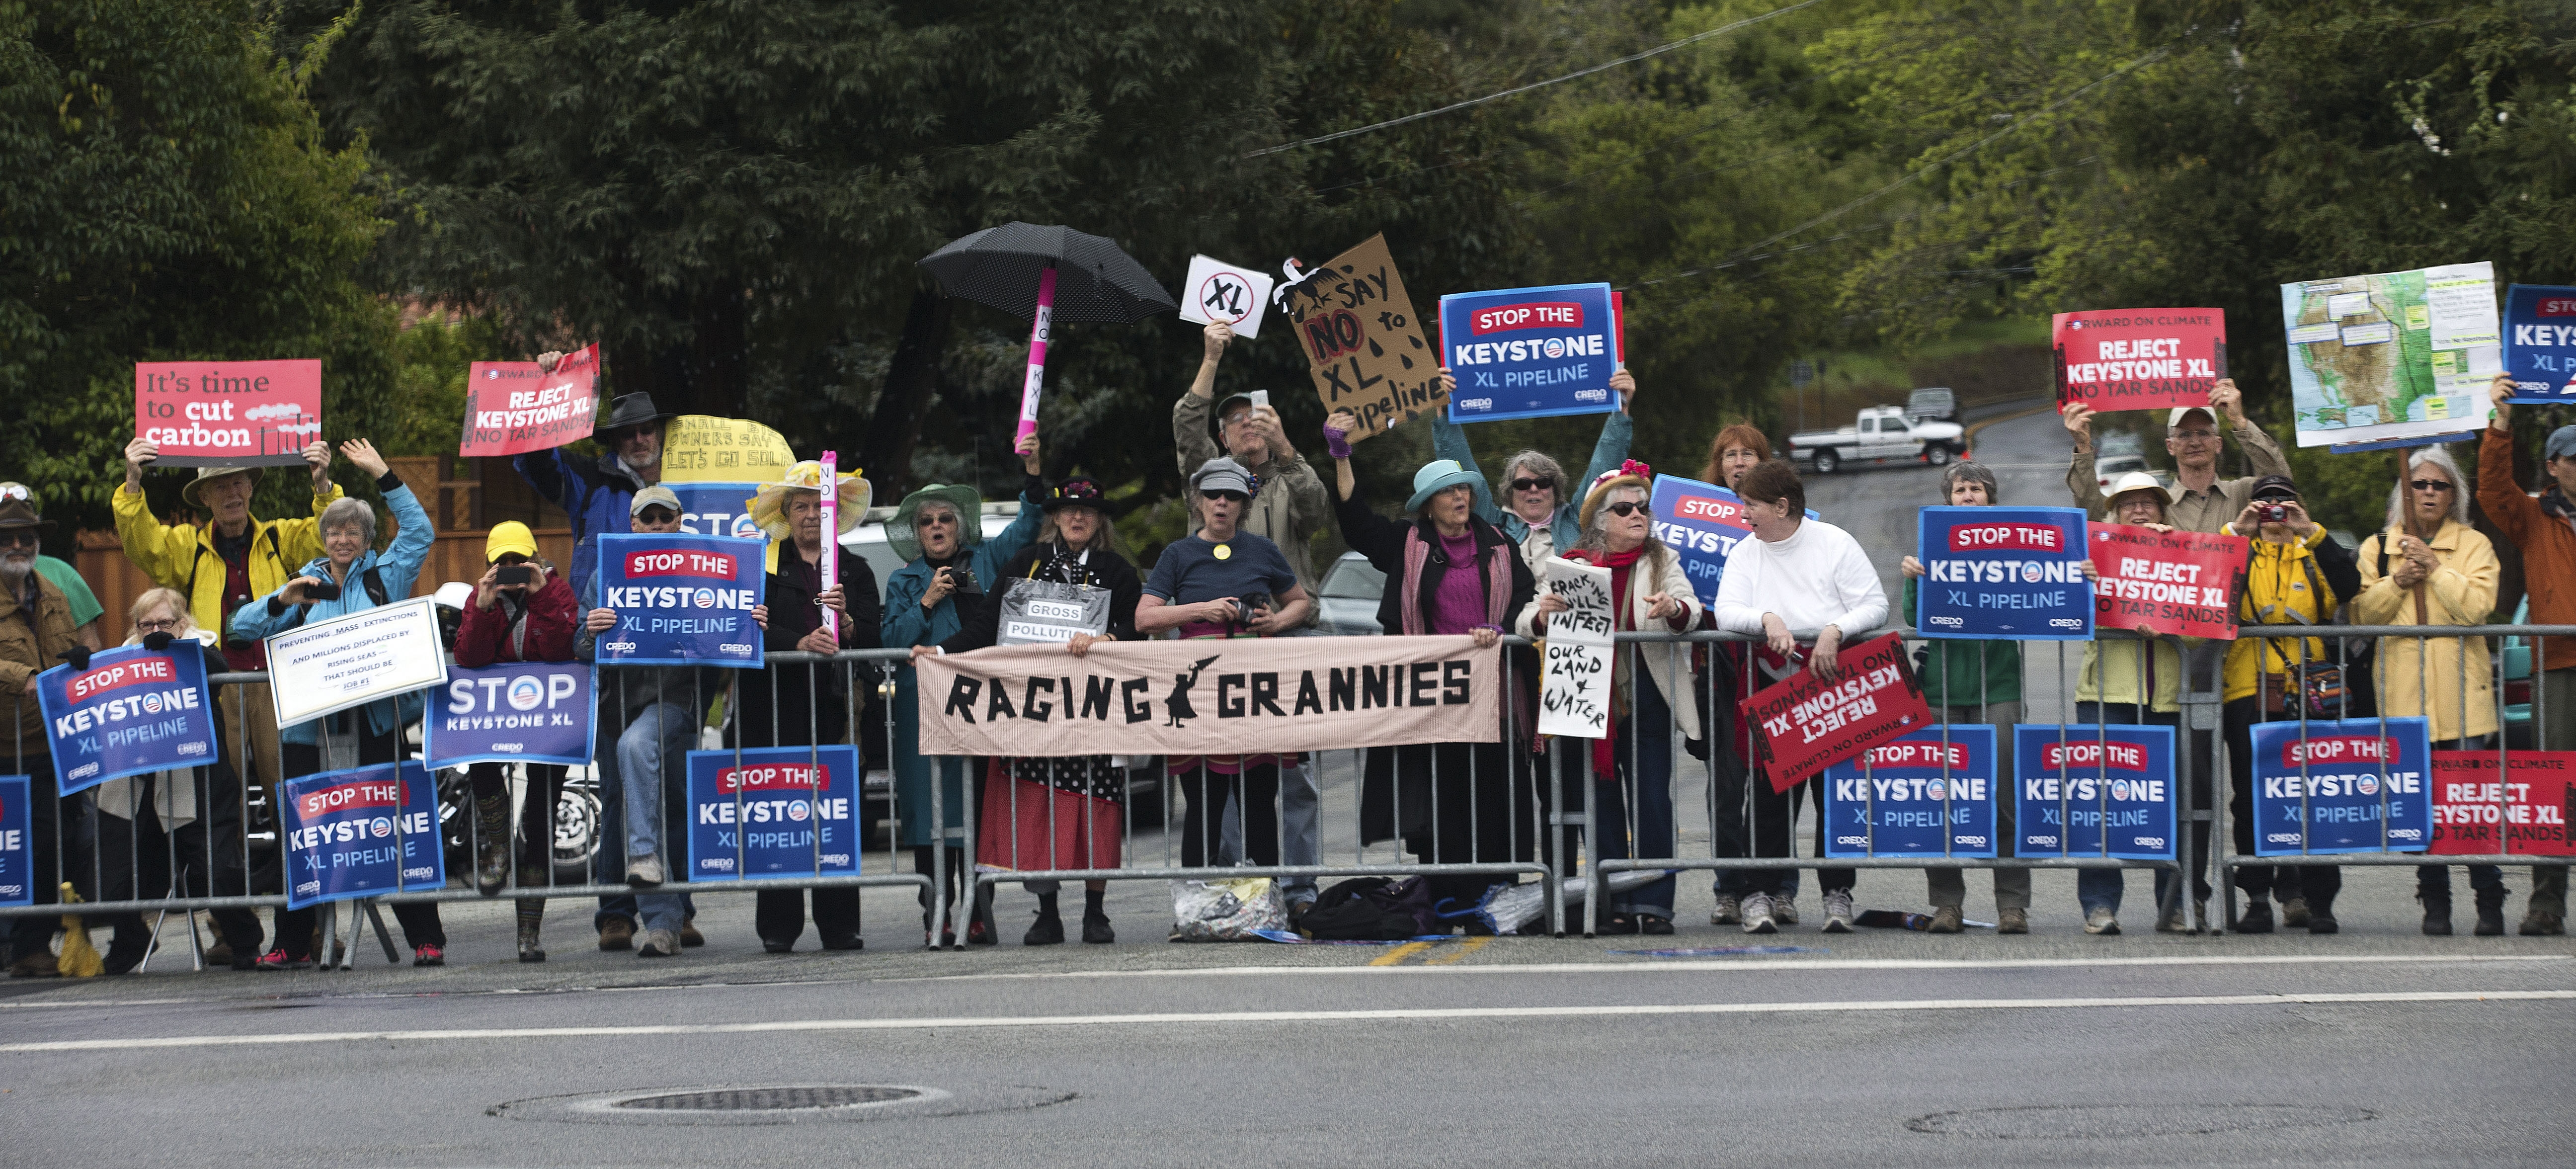 The Keystone XL pipeline has stirred passions on both sides. These pipeline opponents greeted President Obama during his visit to Atherton, Calif., last year.